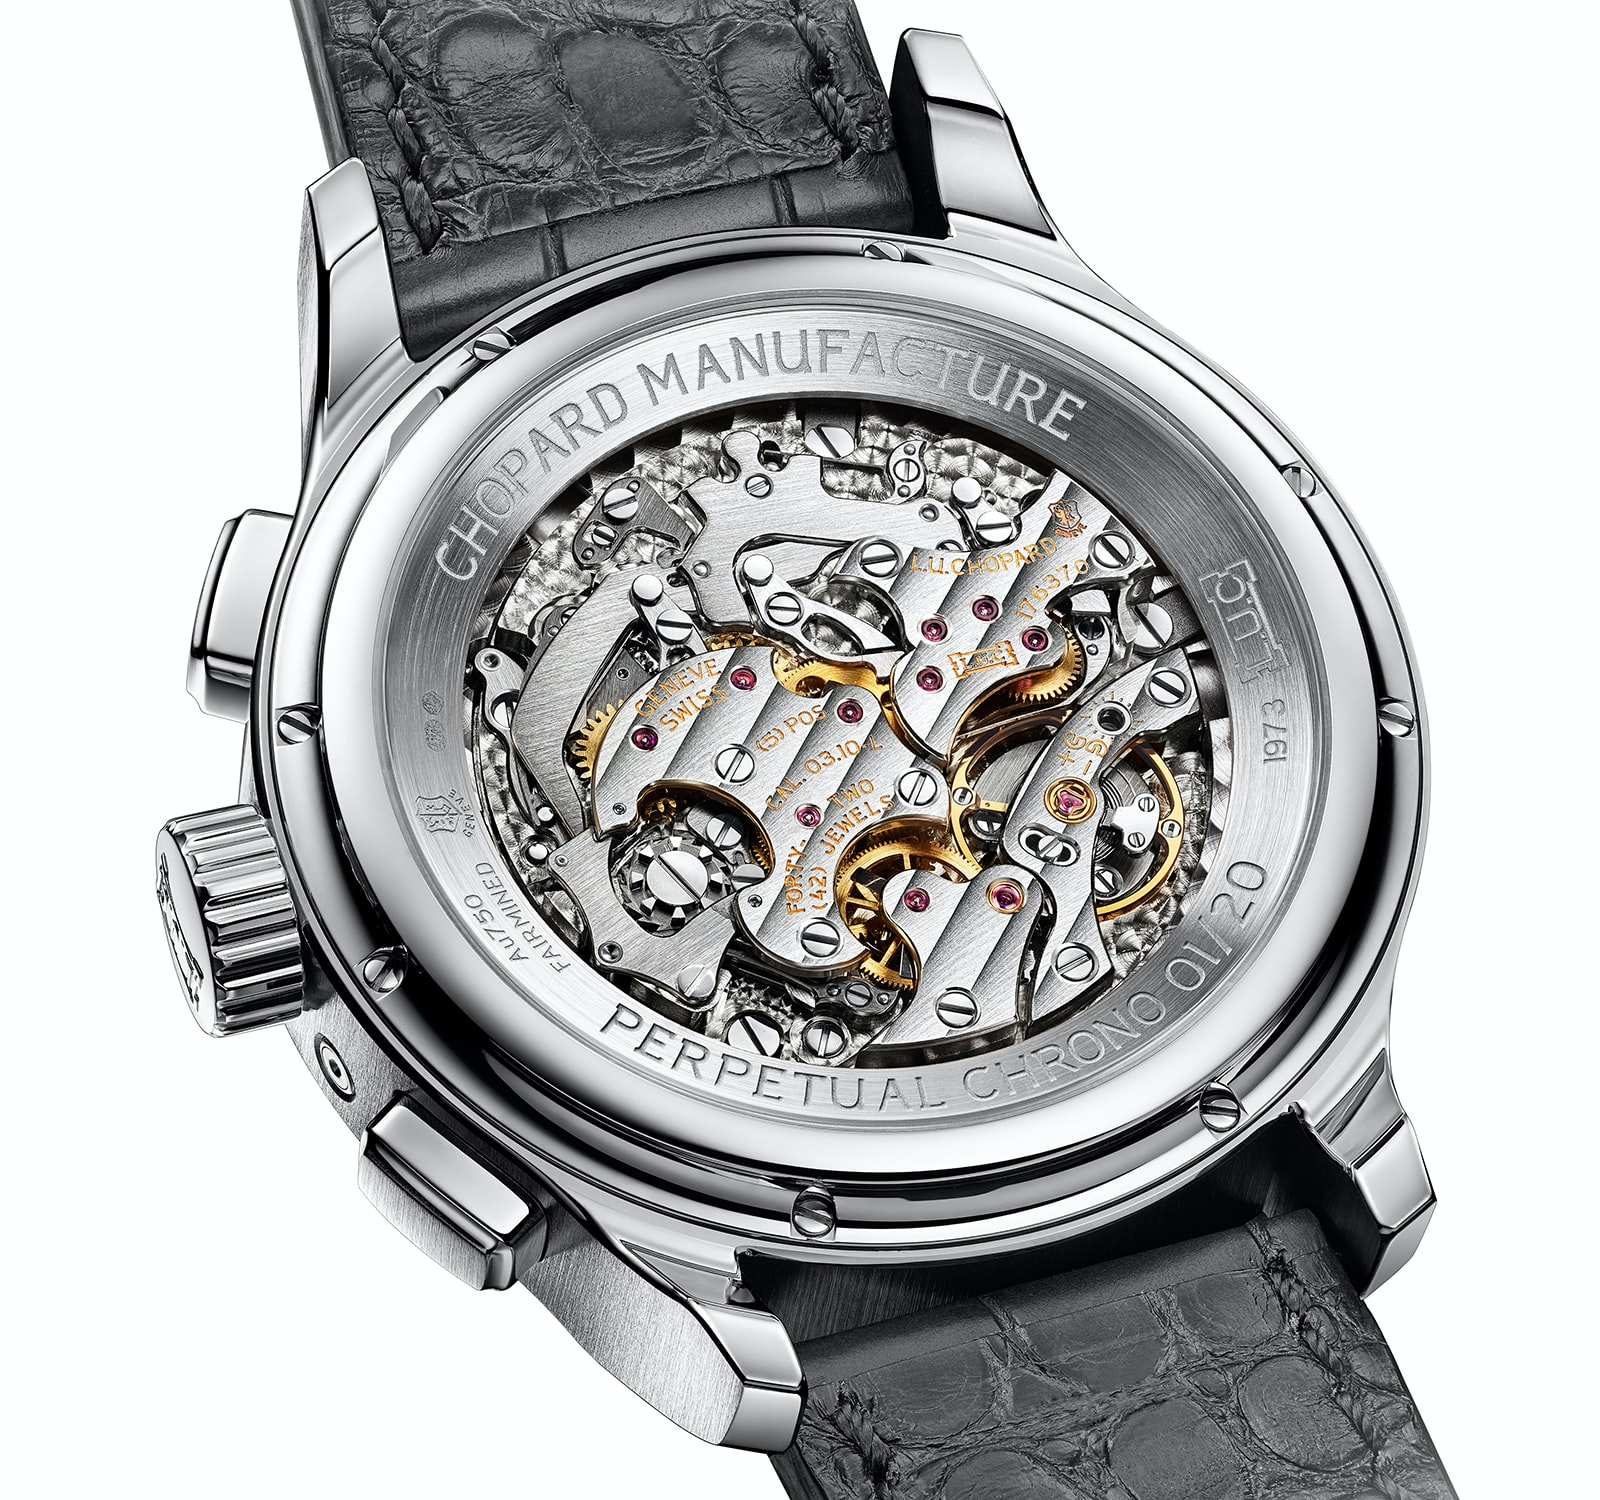 Introducing: The Chopard L.U.C. Perpetual Chrono – Steve ...